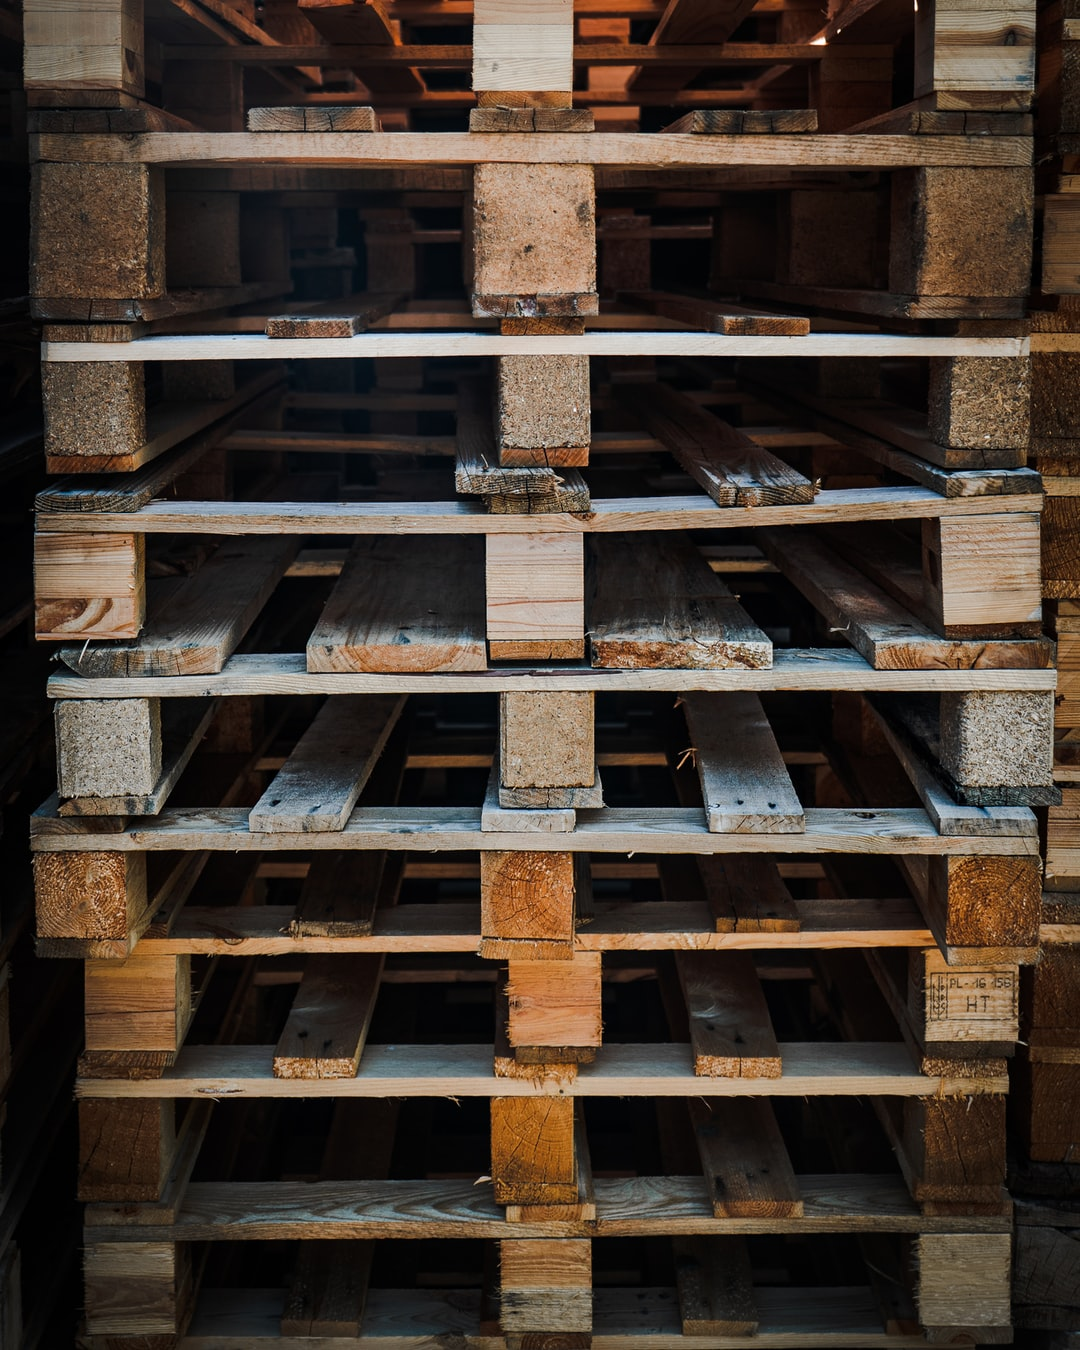 A pile of old, used pallets for transporting heavy goods in trucks, trains etc..